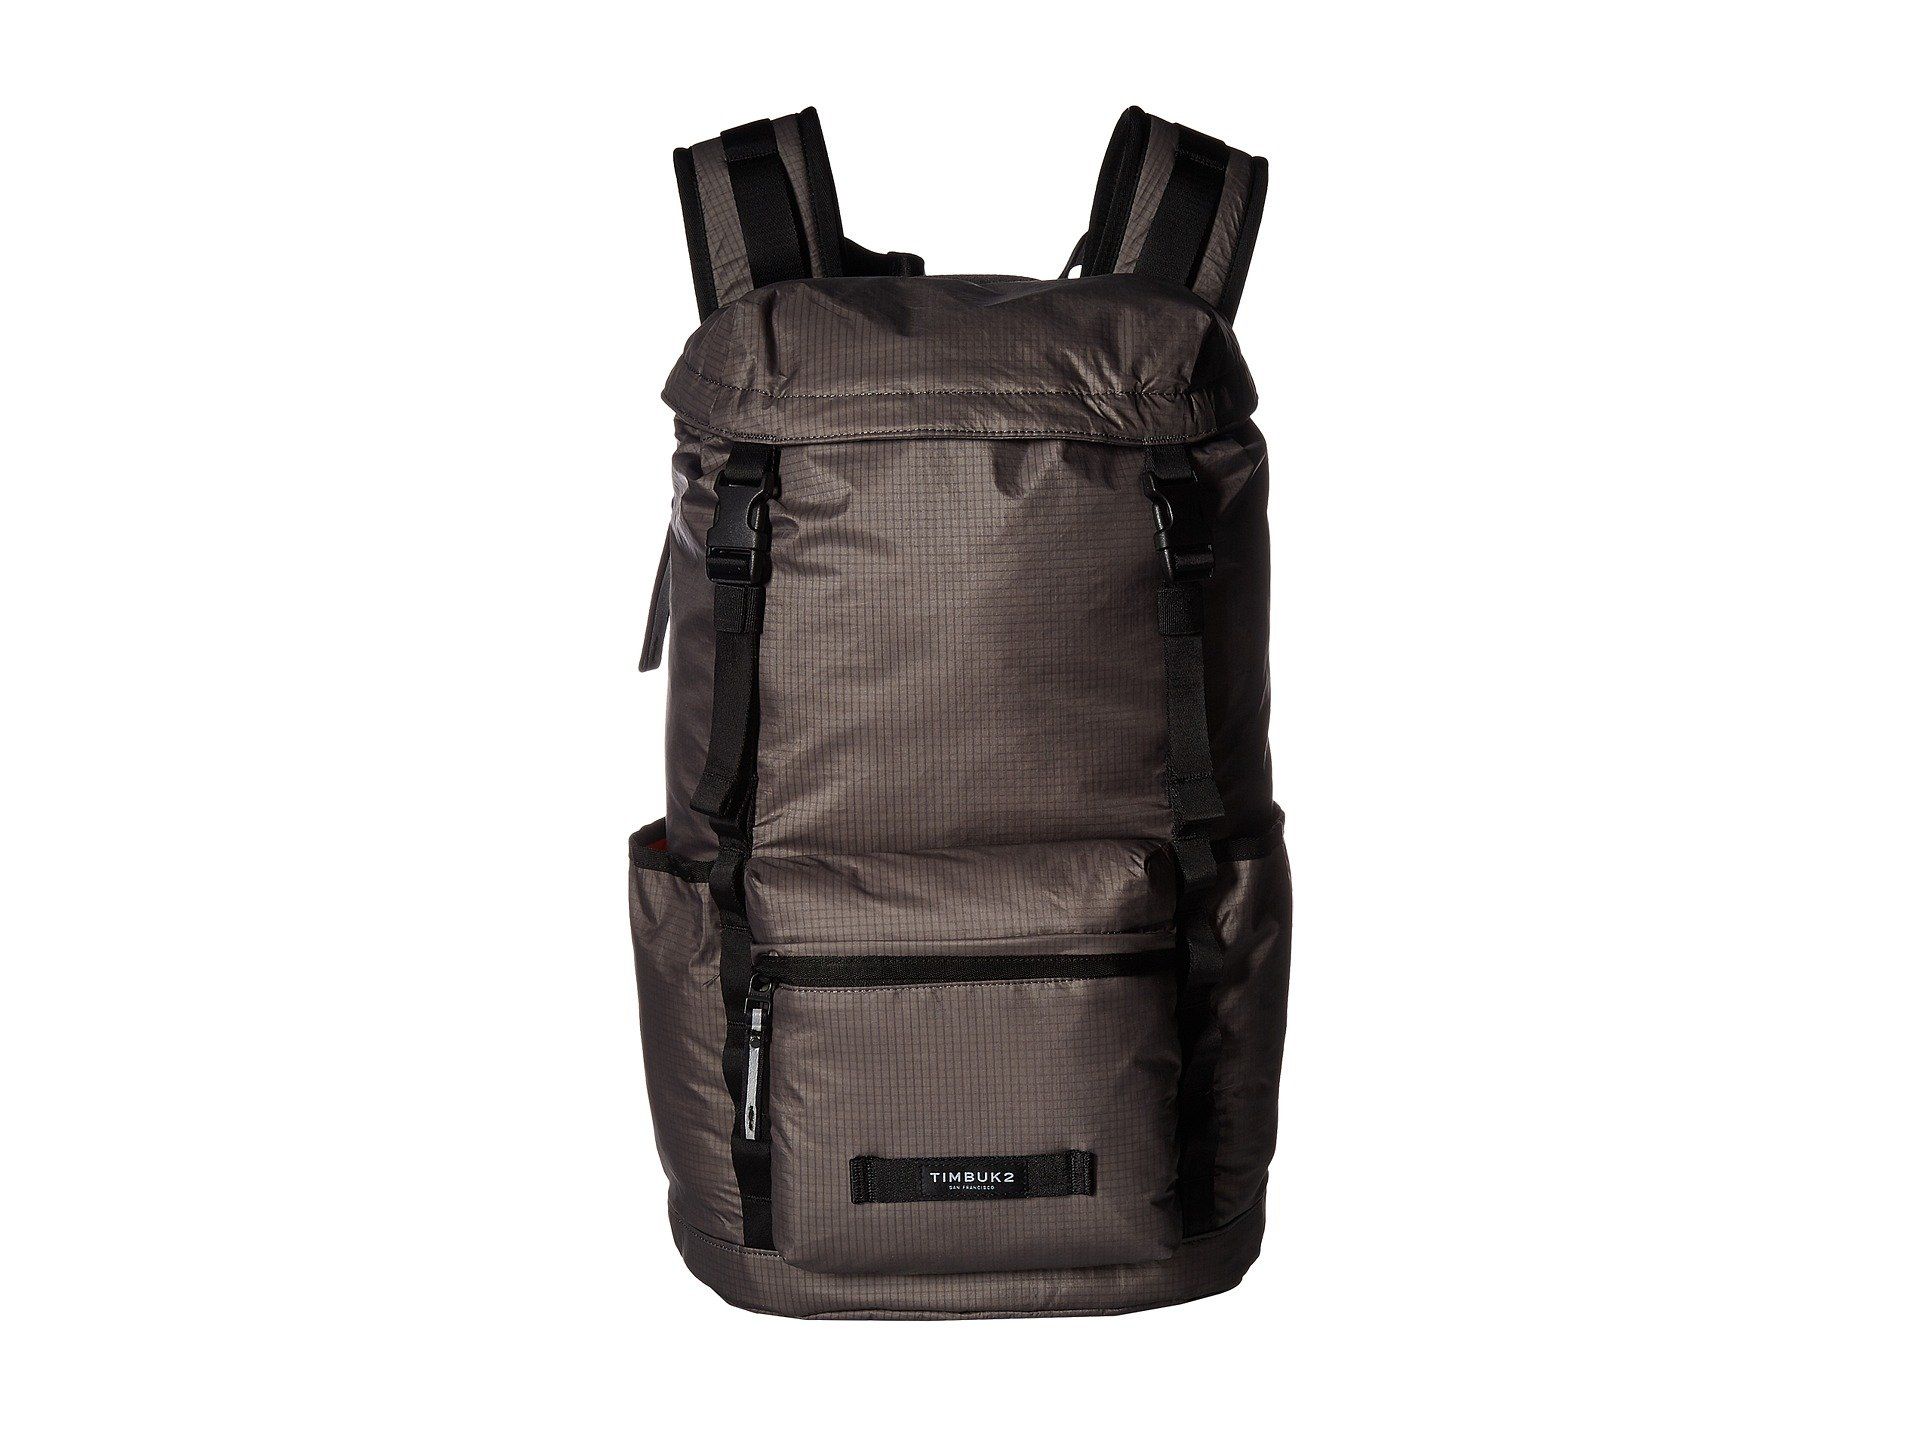 Graphite Timbuk2 Pack Pack Graphite Launch Launch Pack Timbuk2 Graphite Launch Timbuk2 HTZdYH